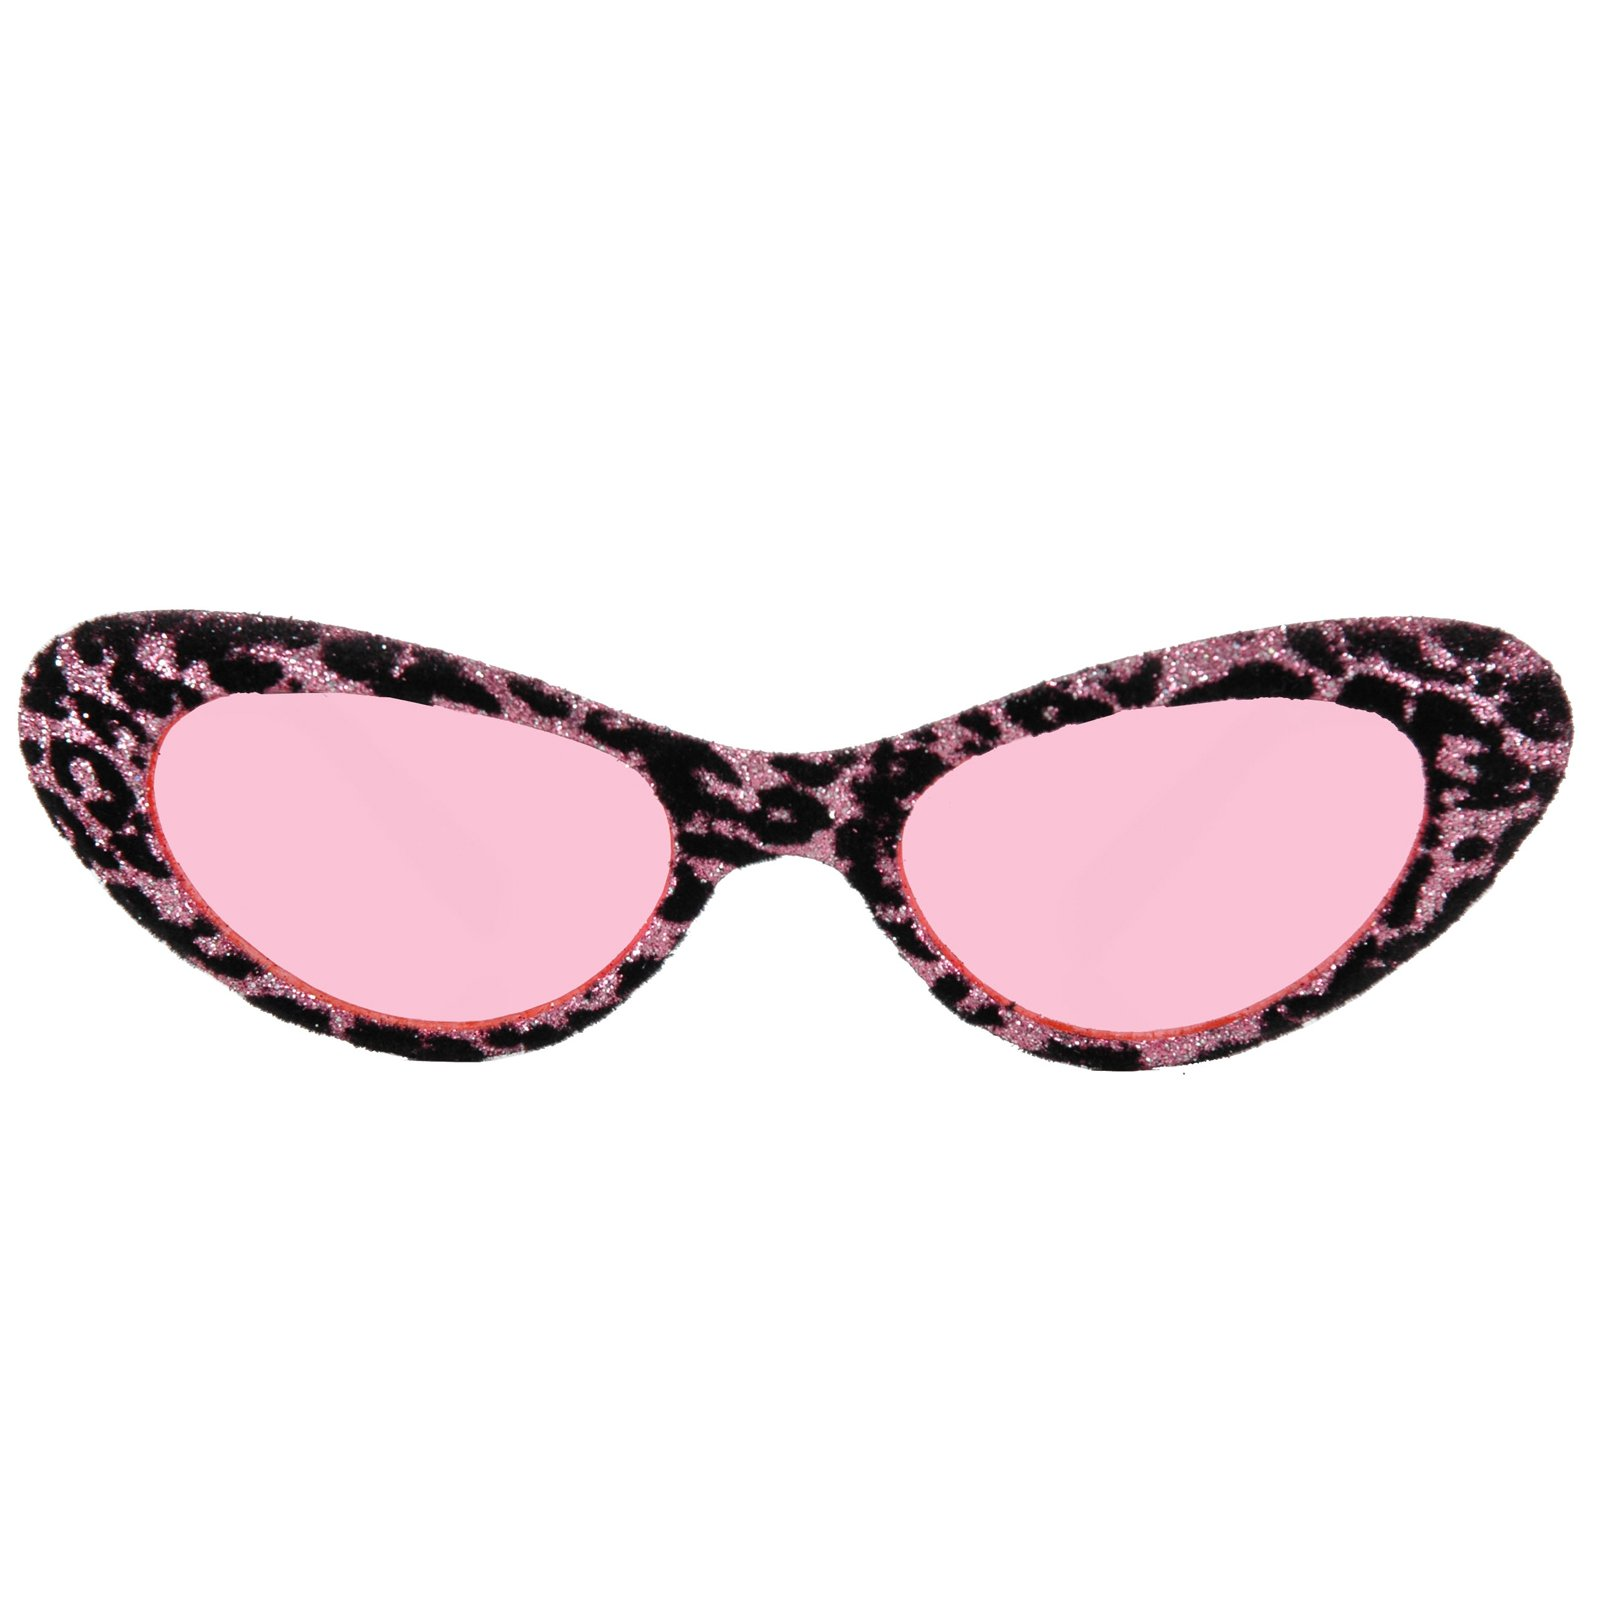 1950's Cat Eye Glasses - Pink & Black